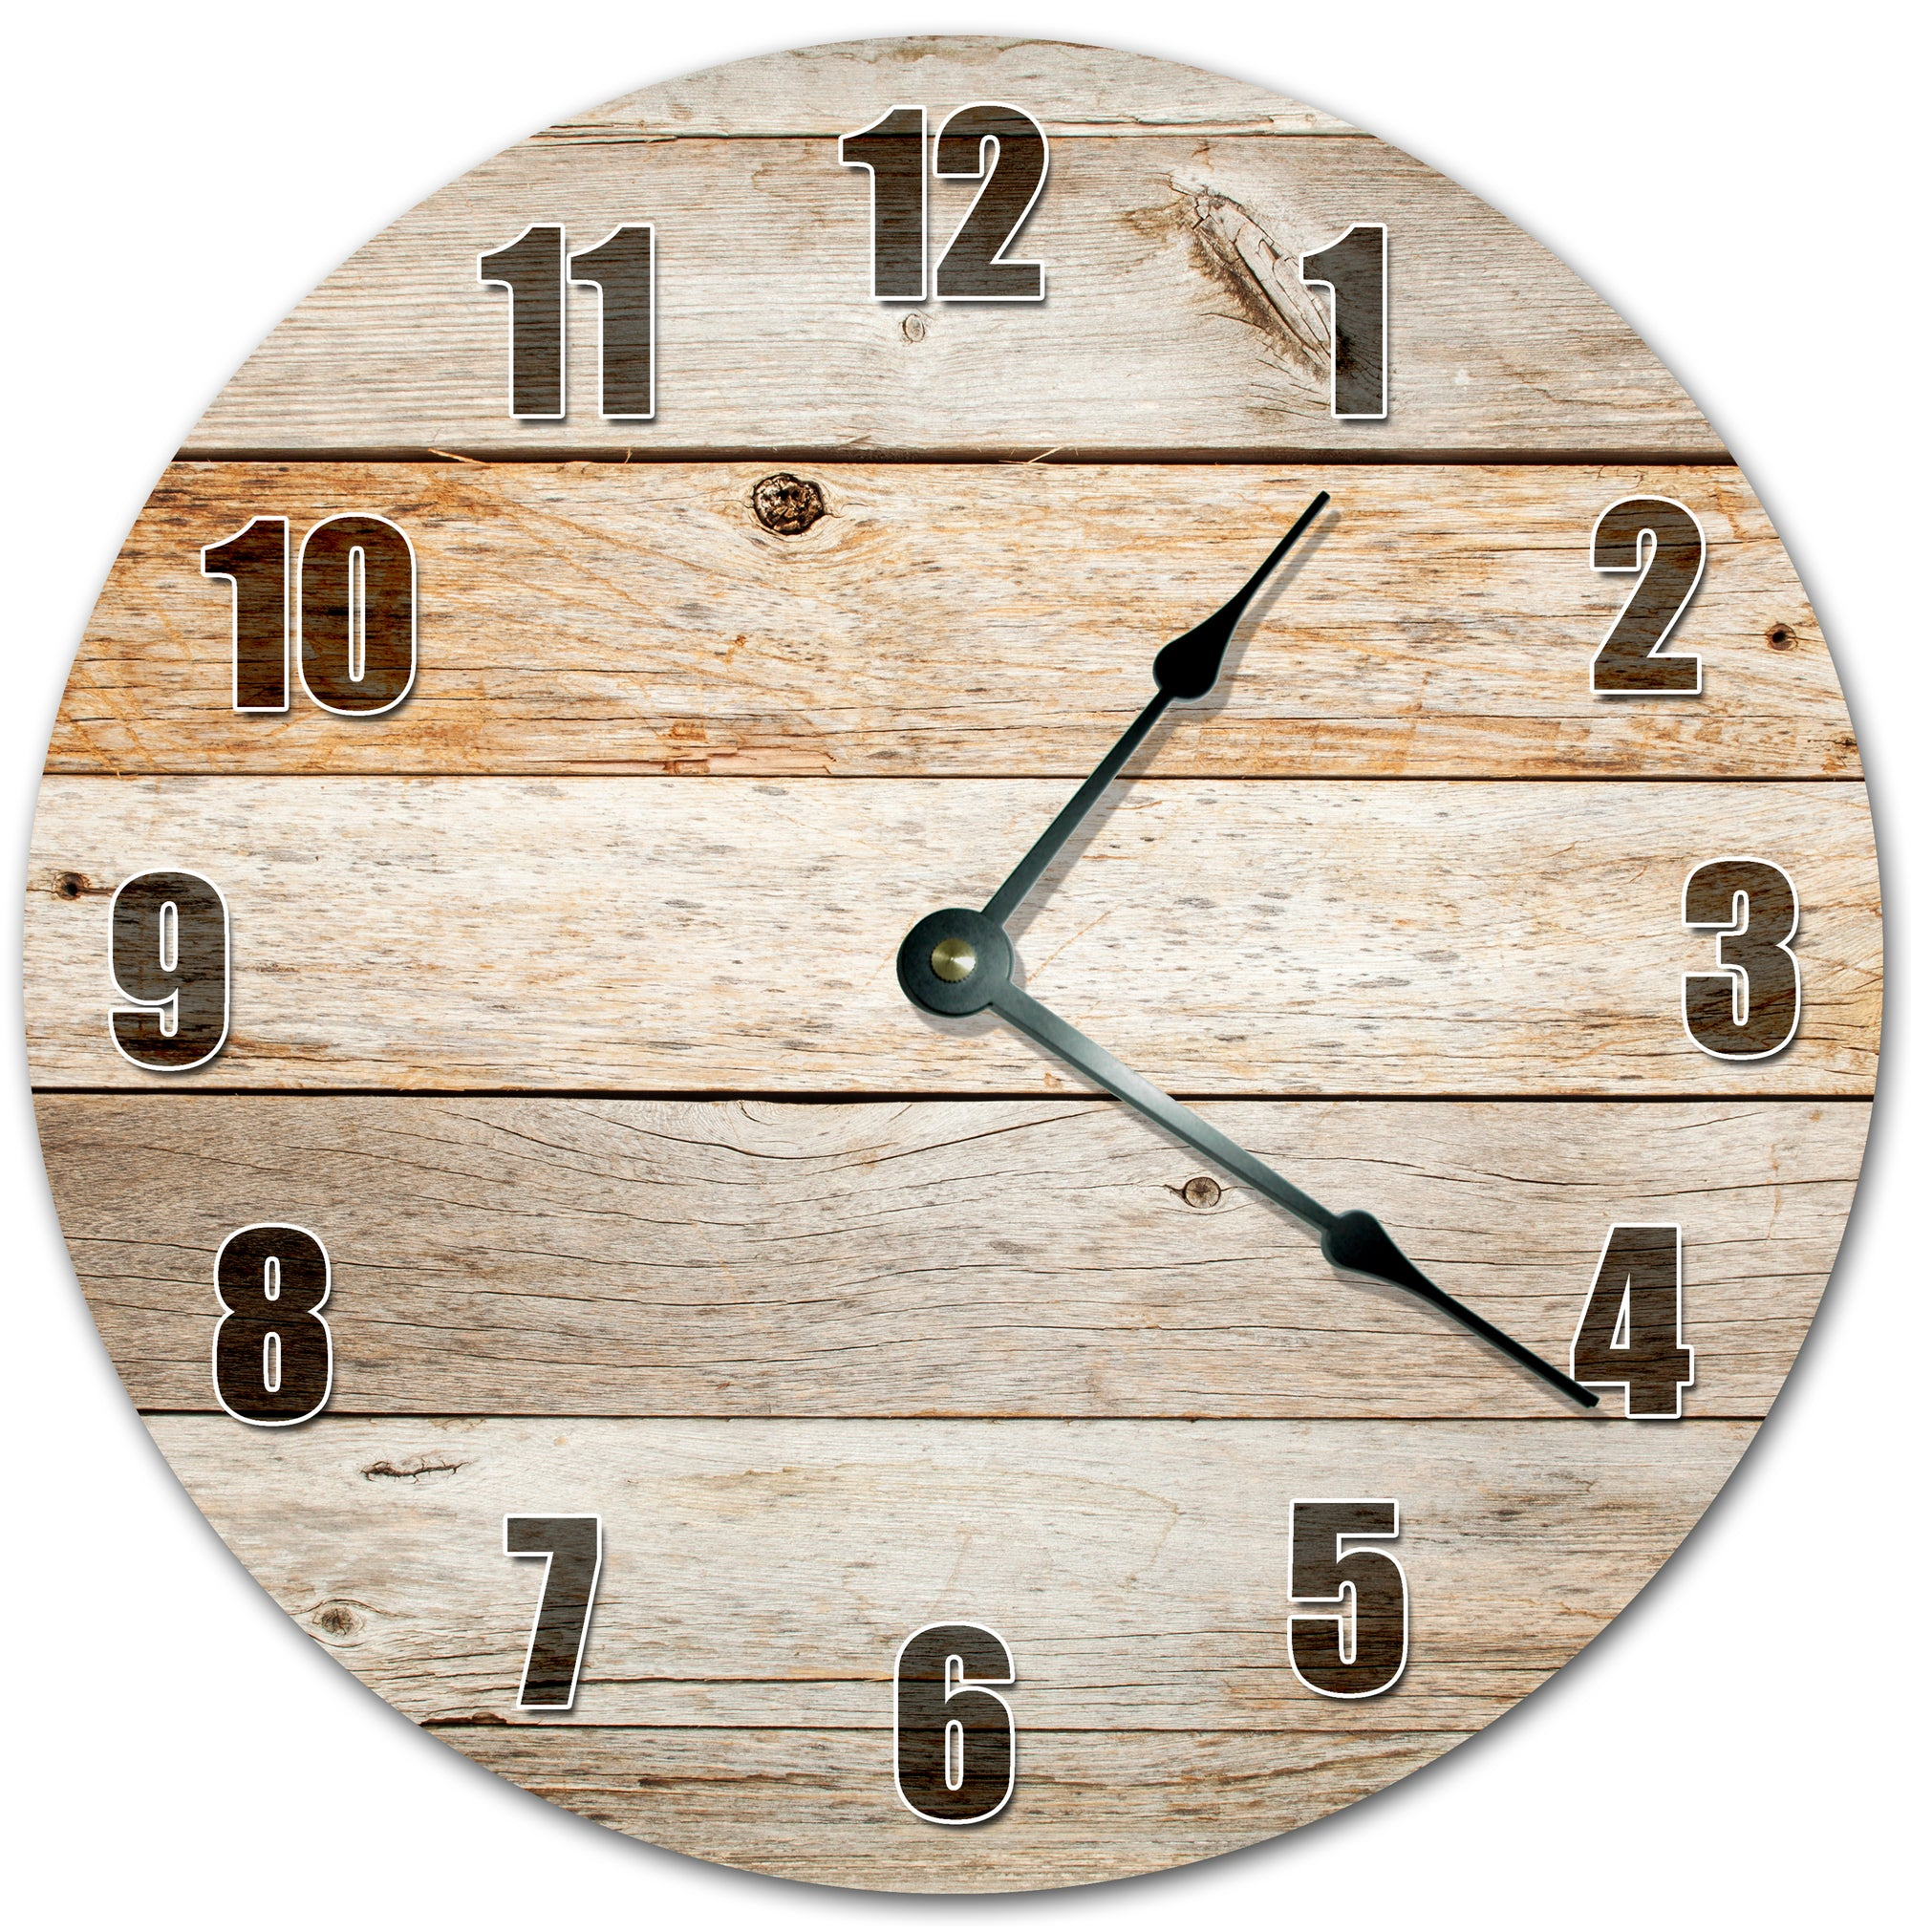 Rustic Wood Boards Hanging Wall Clock